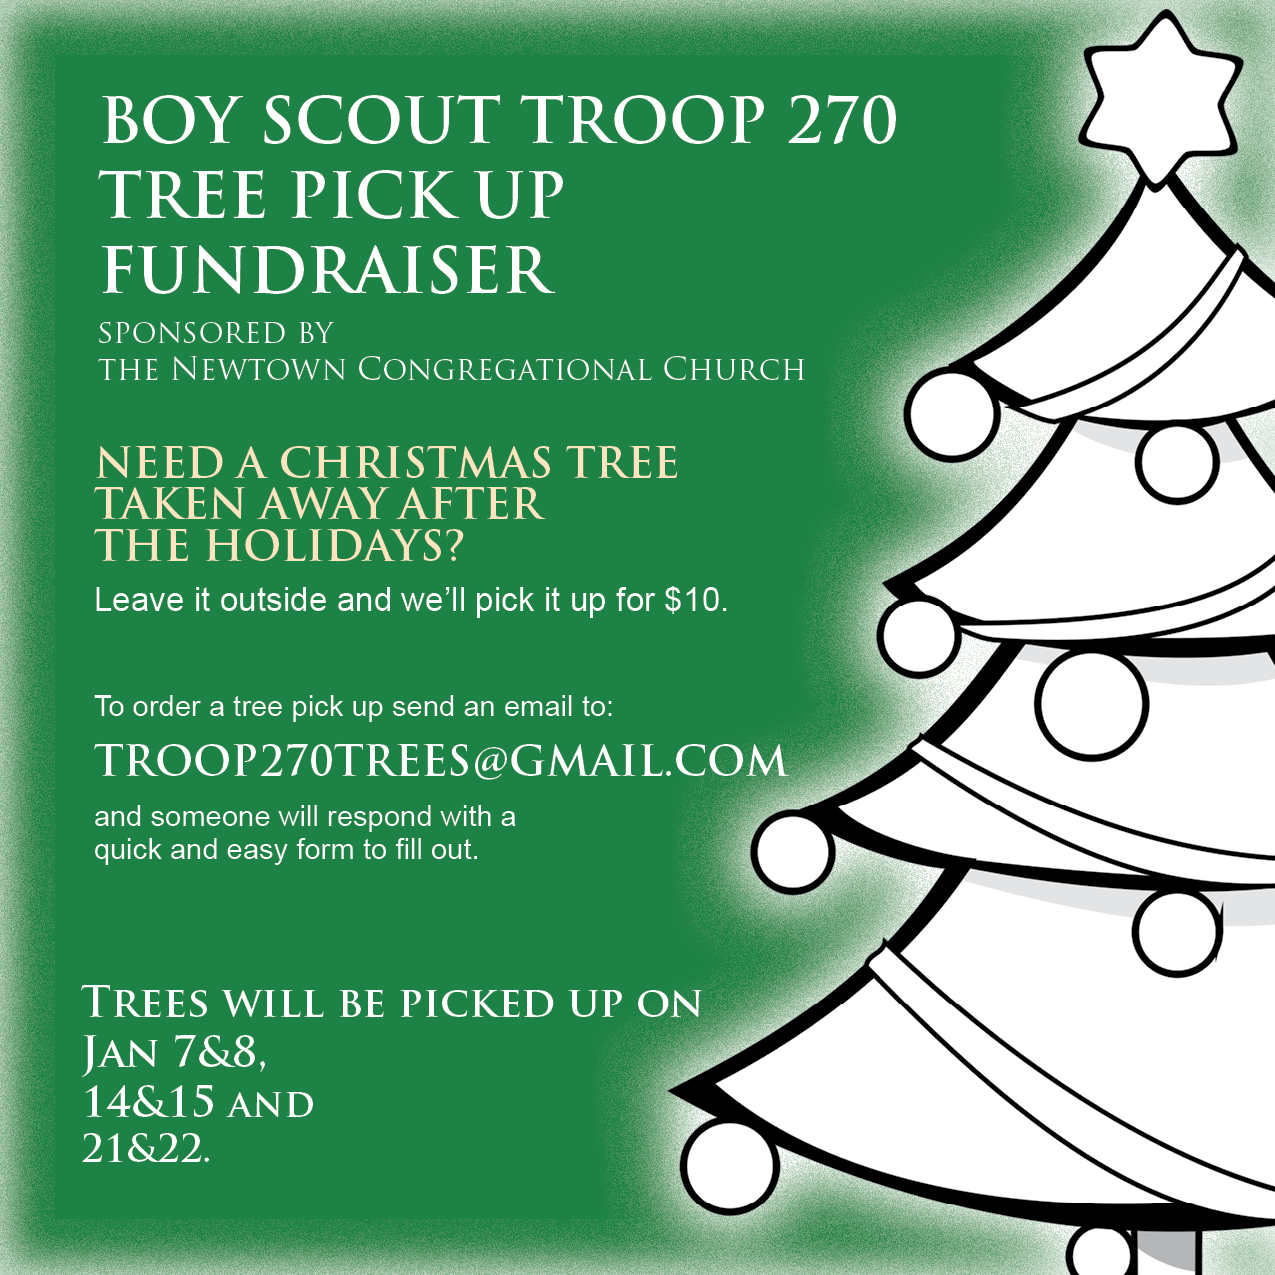 the boy scouts will pick up trees at peoples homes throughout newtown and ask for a 10 donation to take it away - Boy Scout Christmas Trees